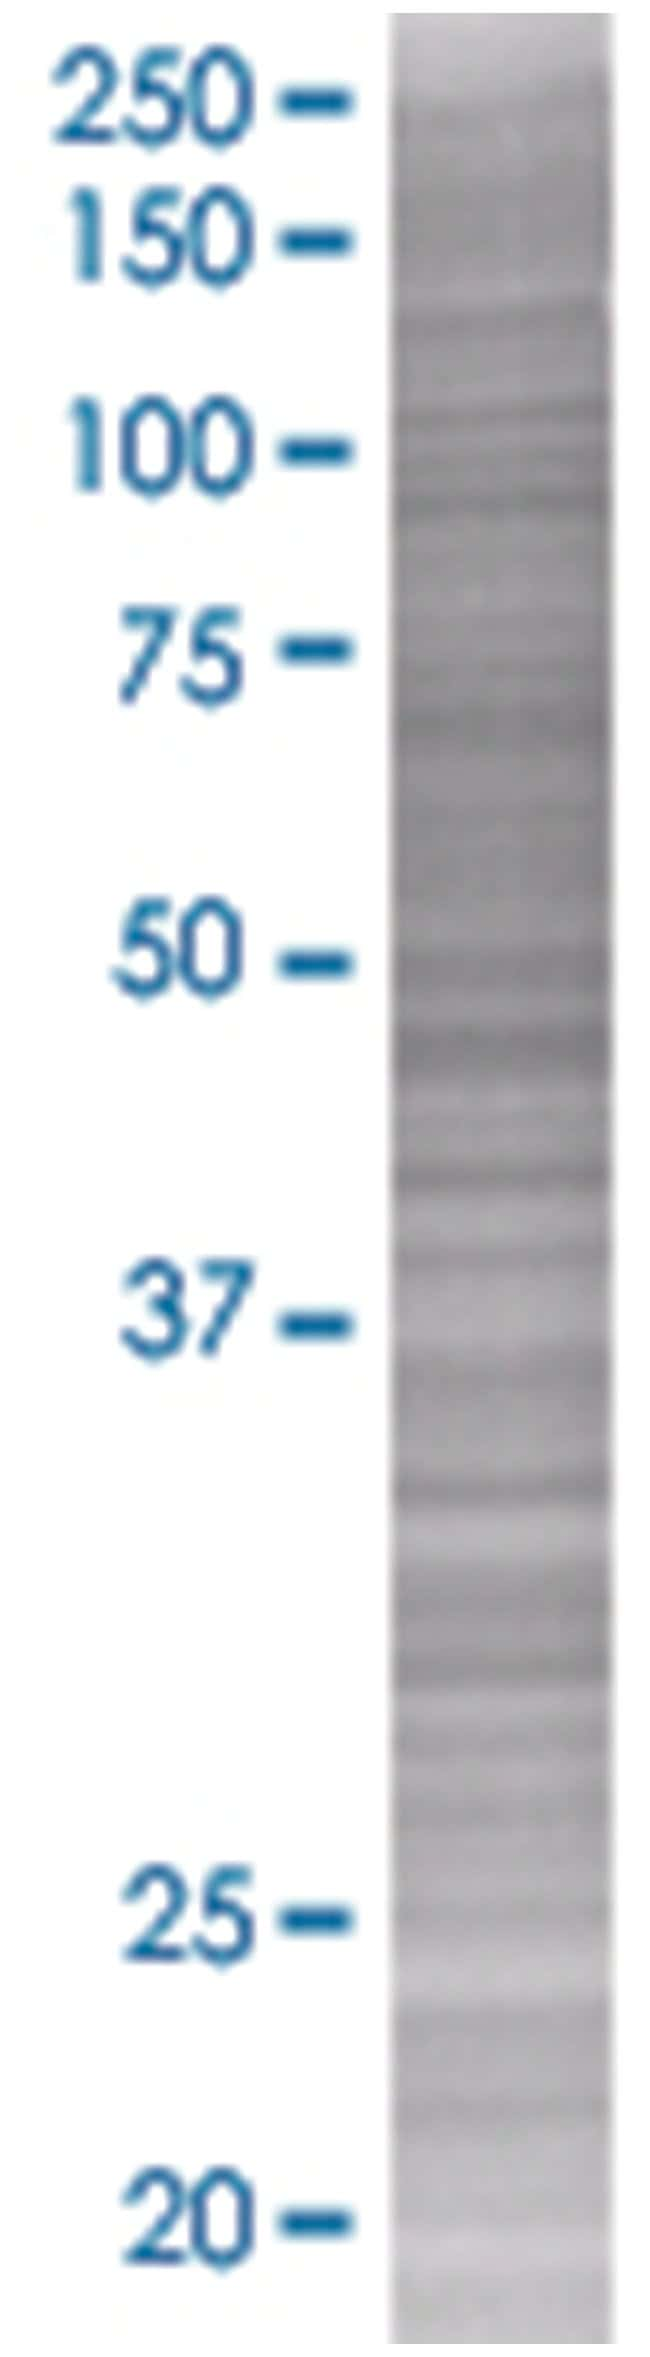 IL9 293T Cell Overexpression Lysate (Denatured), Abnova 100µL:Life